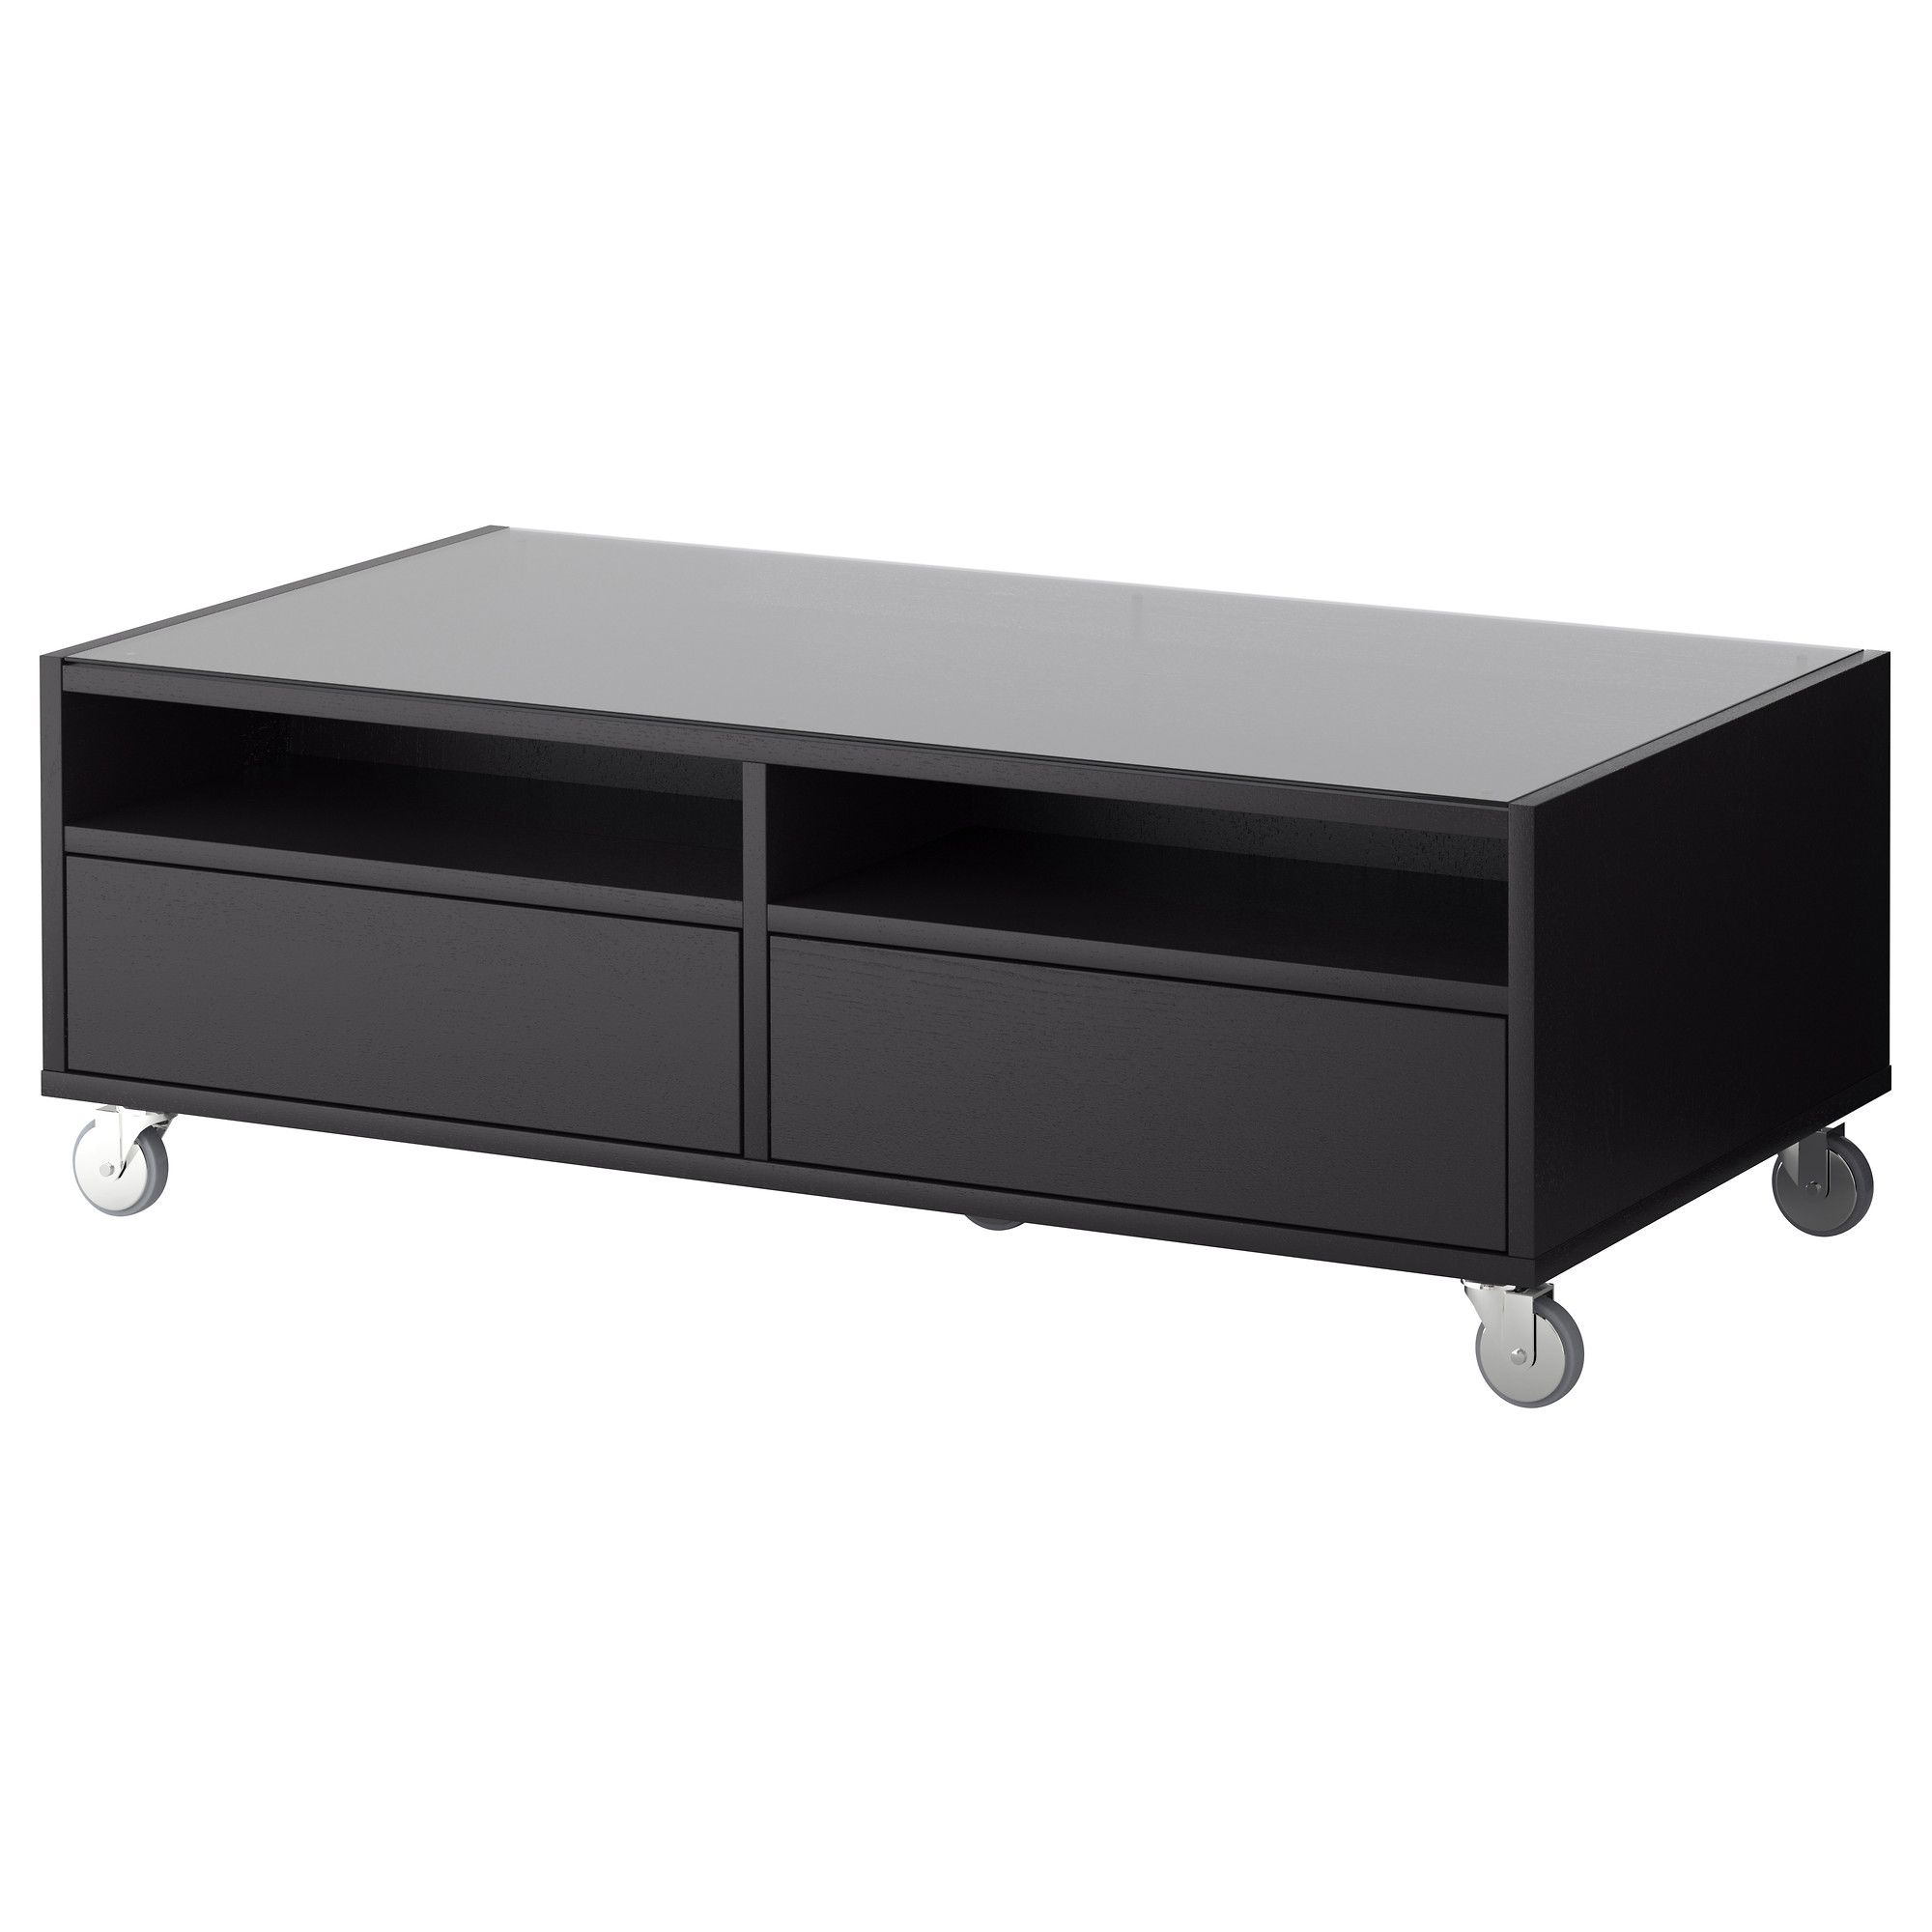 Boksel Coffee Table  Black Brown  Ikea 120